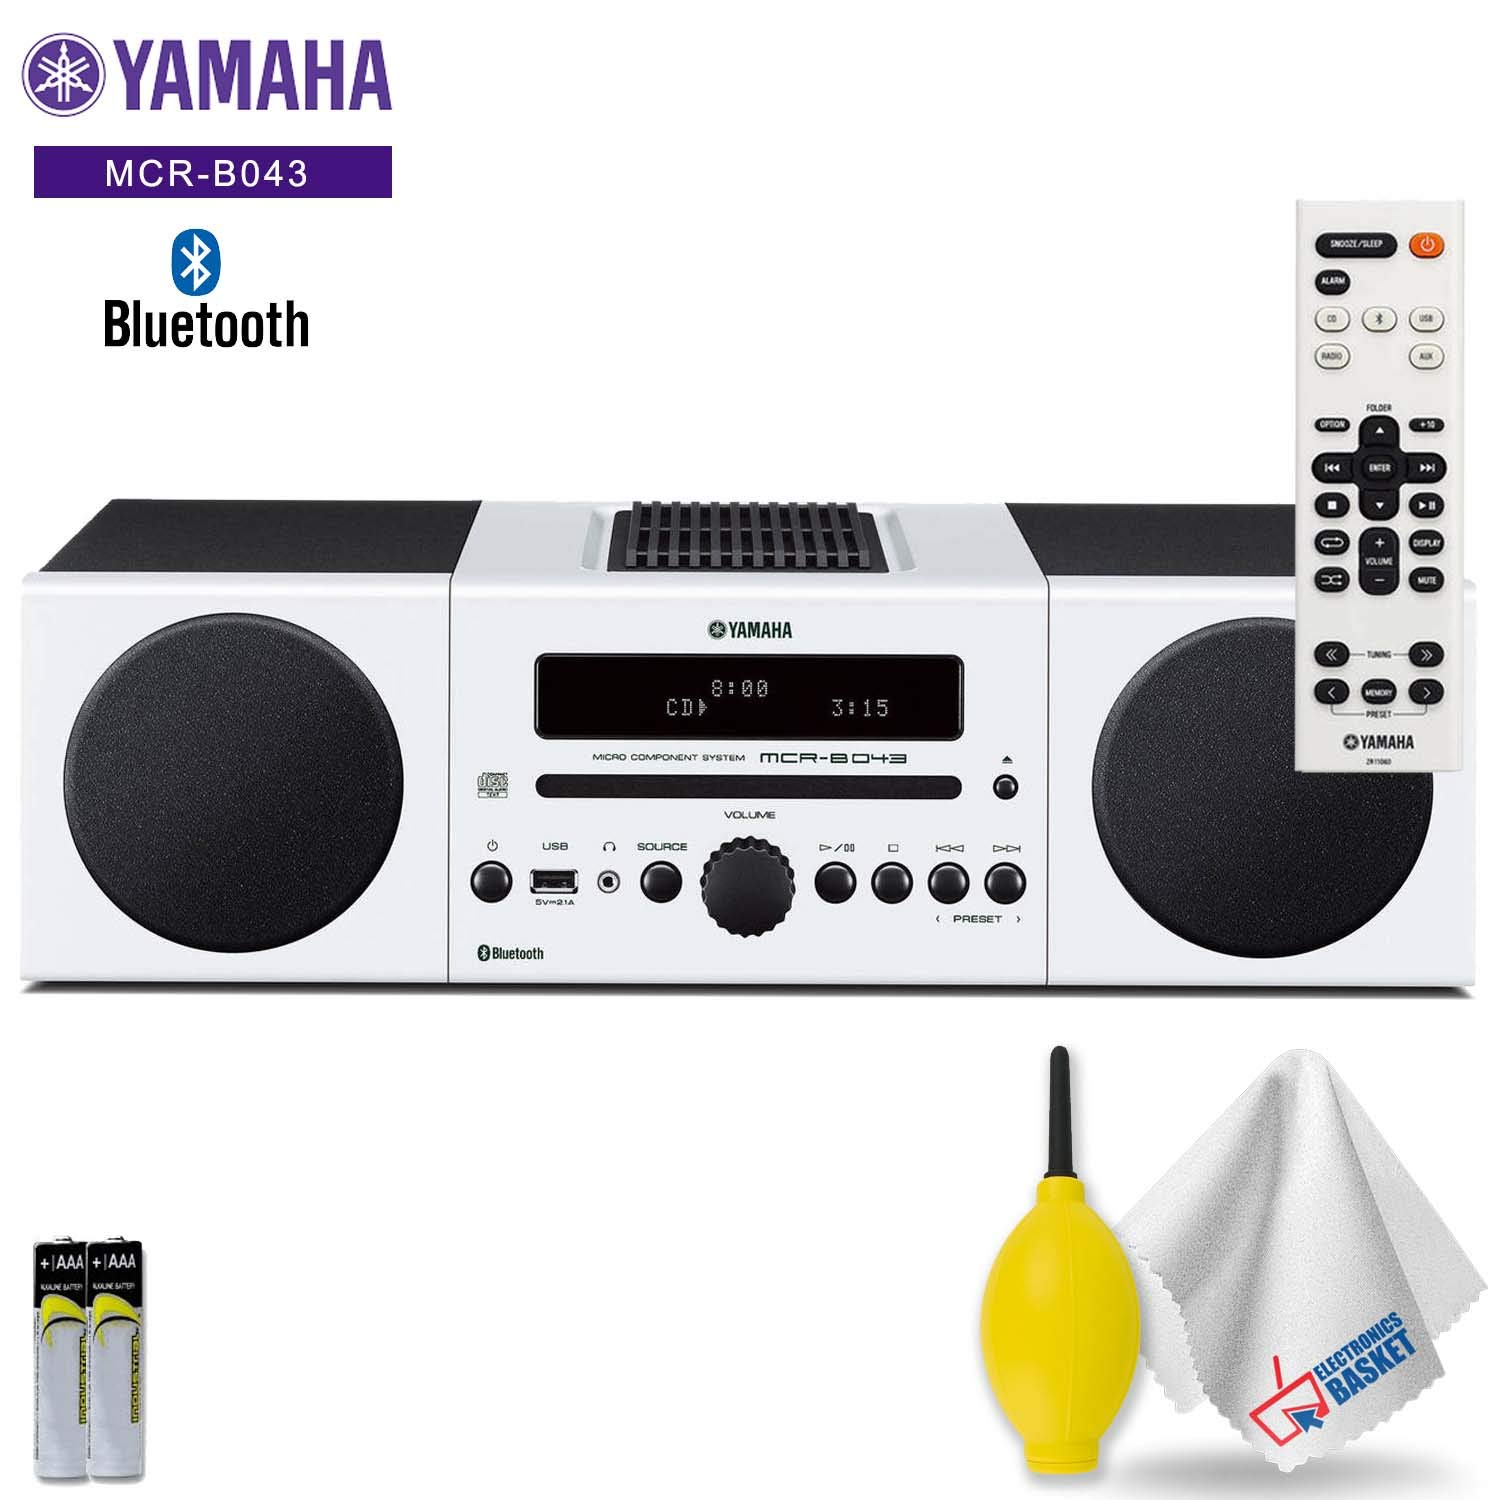 Yamaha MCR-B043 30W Bluetooth Wireless Music System (White) Accessory Kit - Includes - Cleaning Kit by Electronics Basket